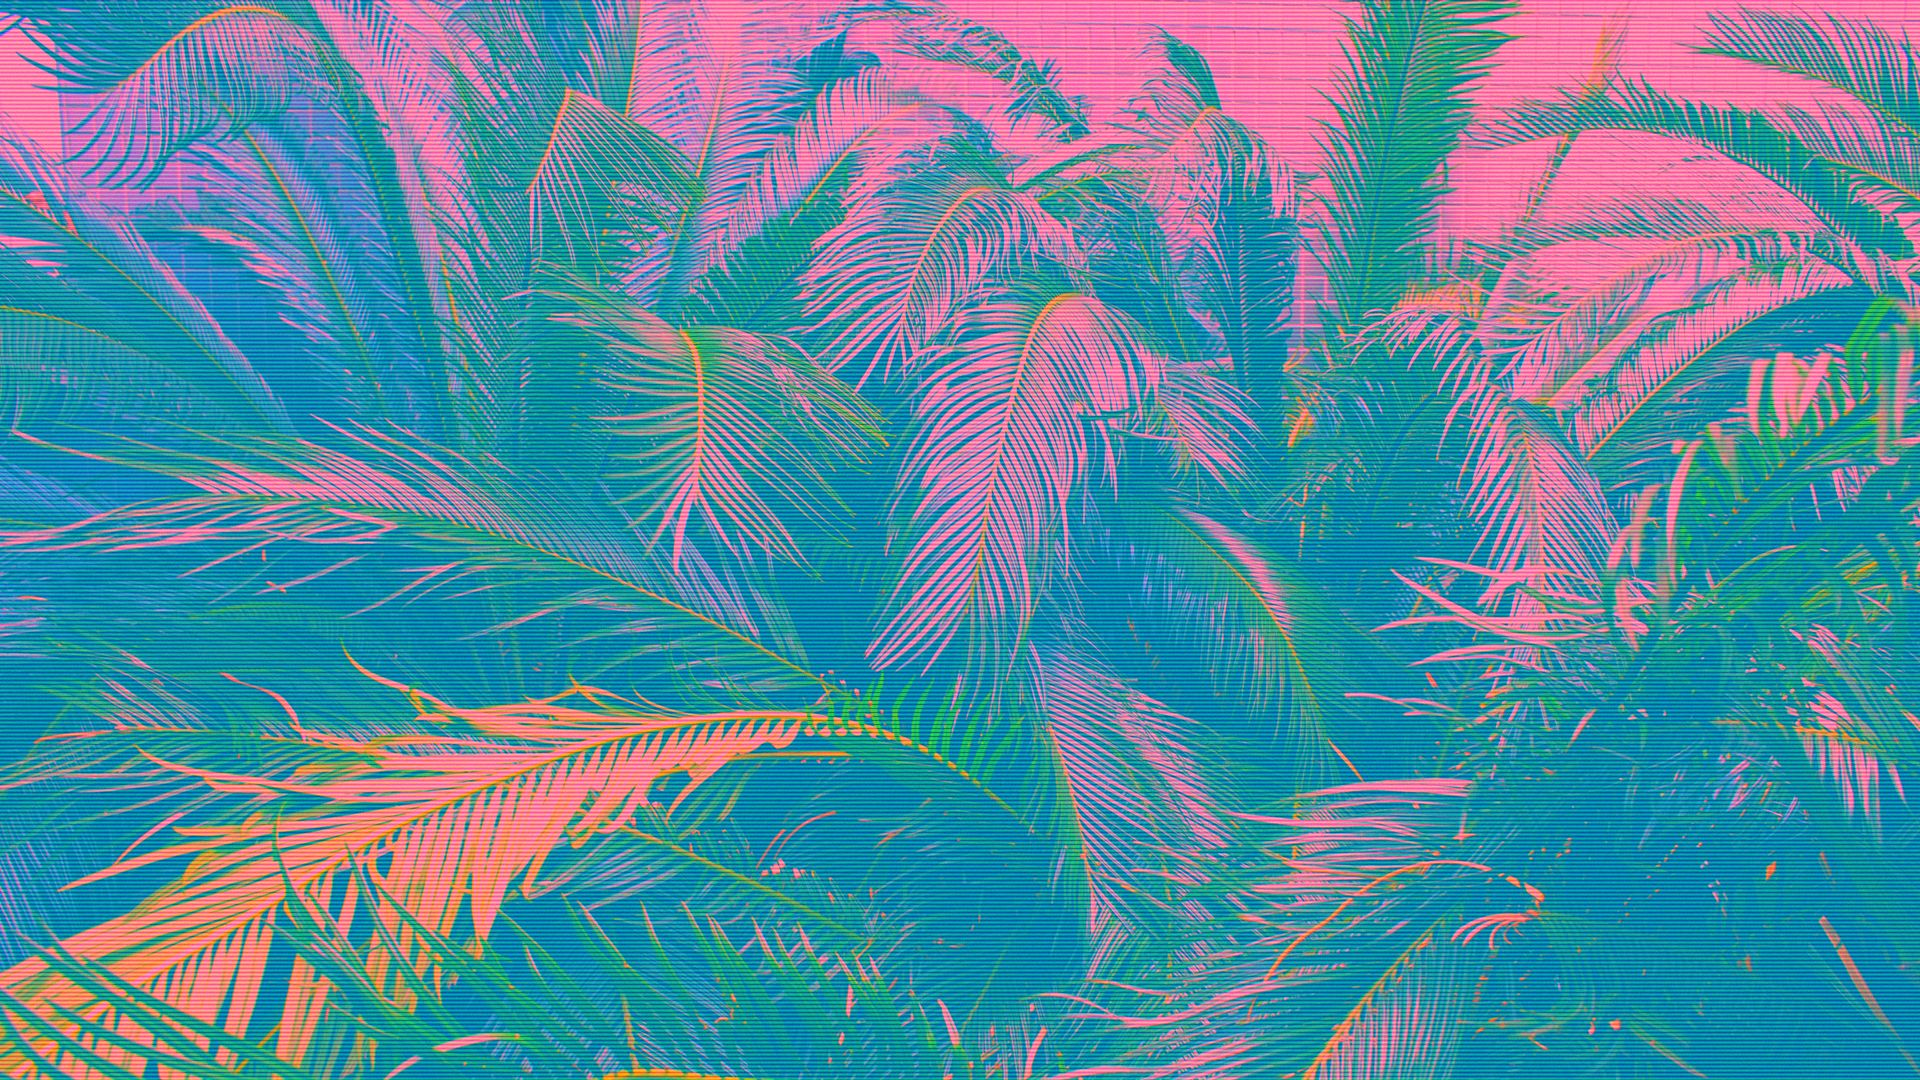 glitched 1920x1080 wallpapers in 2018 pinterest vaporwave